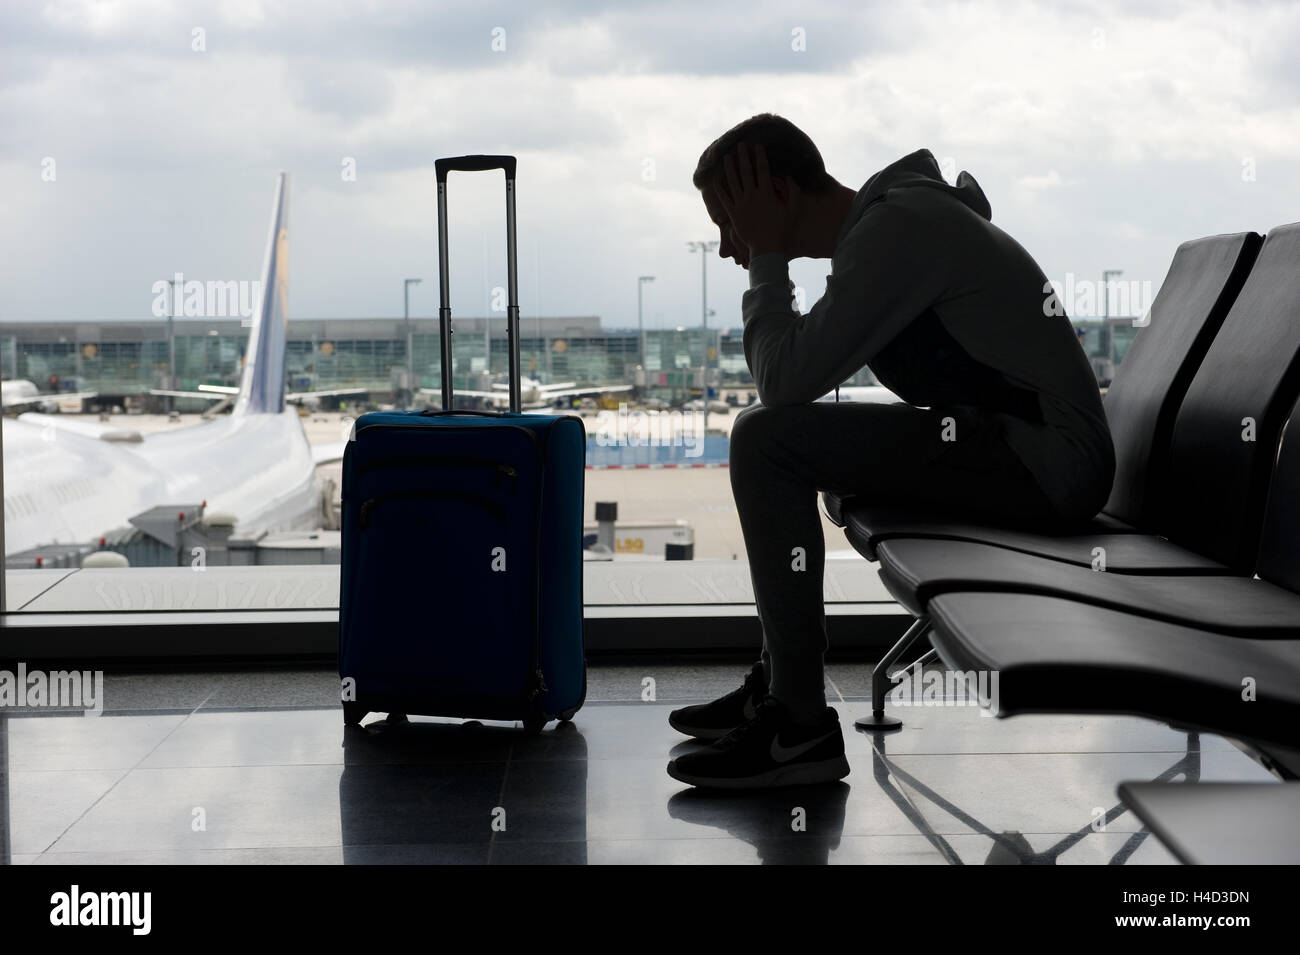 A teenager is waiting on an airport for departure - Stock Image